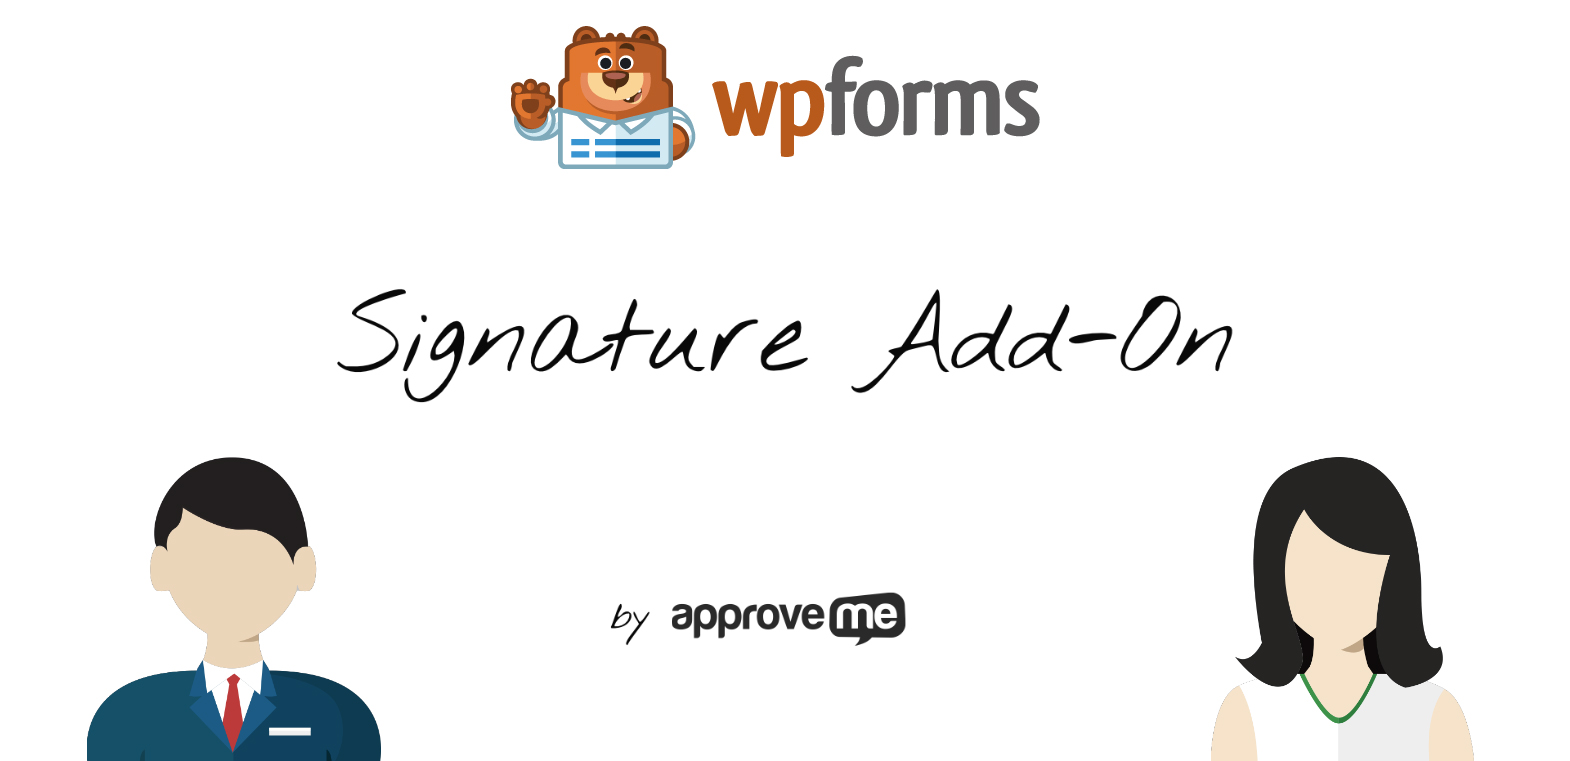 wp forms signature addon